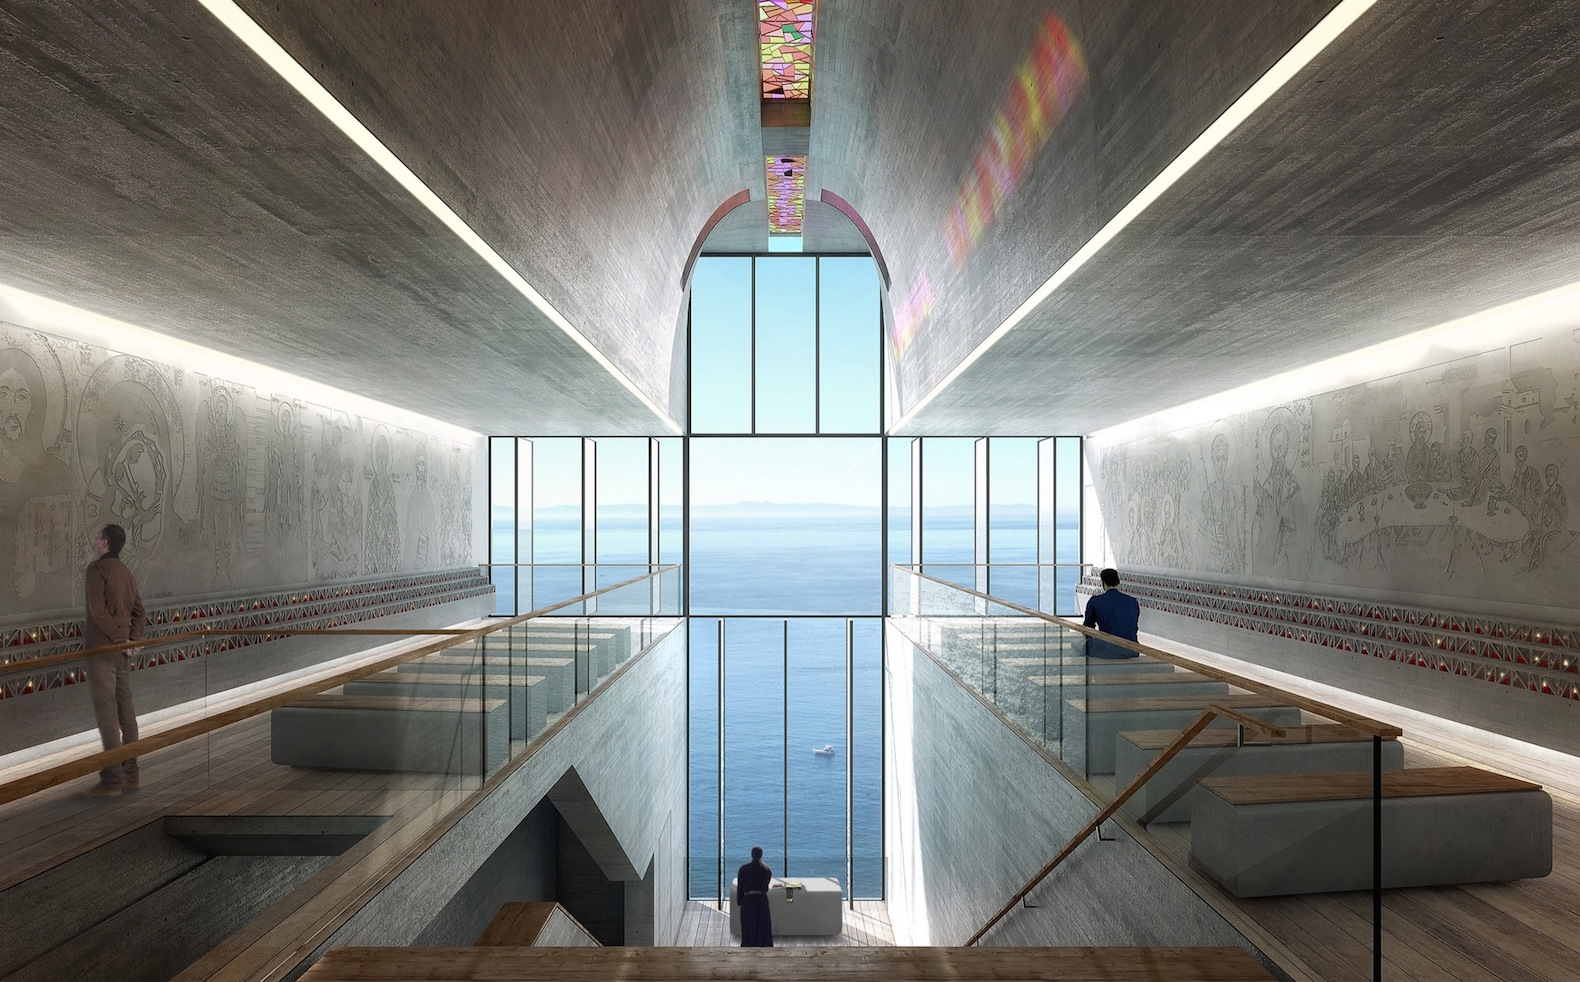 Breathtaking chapel clings to the cliffside for transcendent sea views